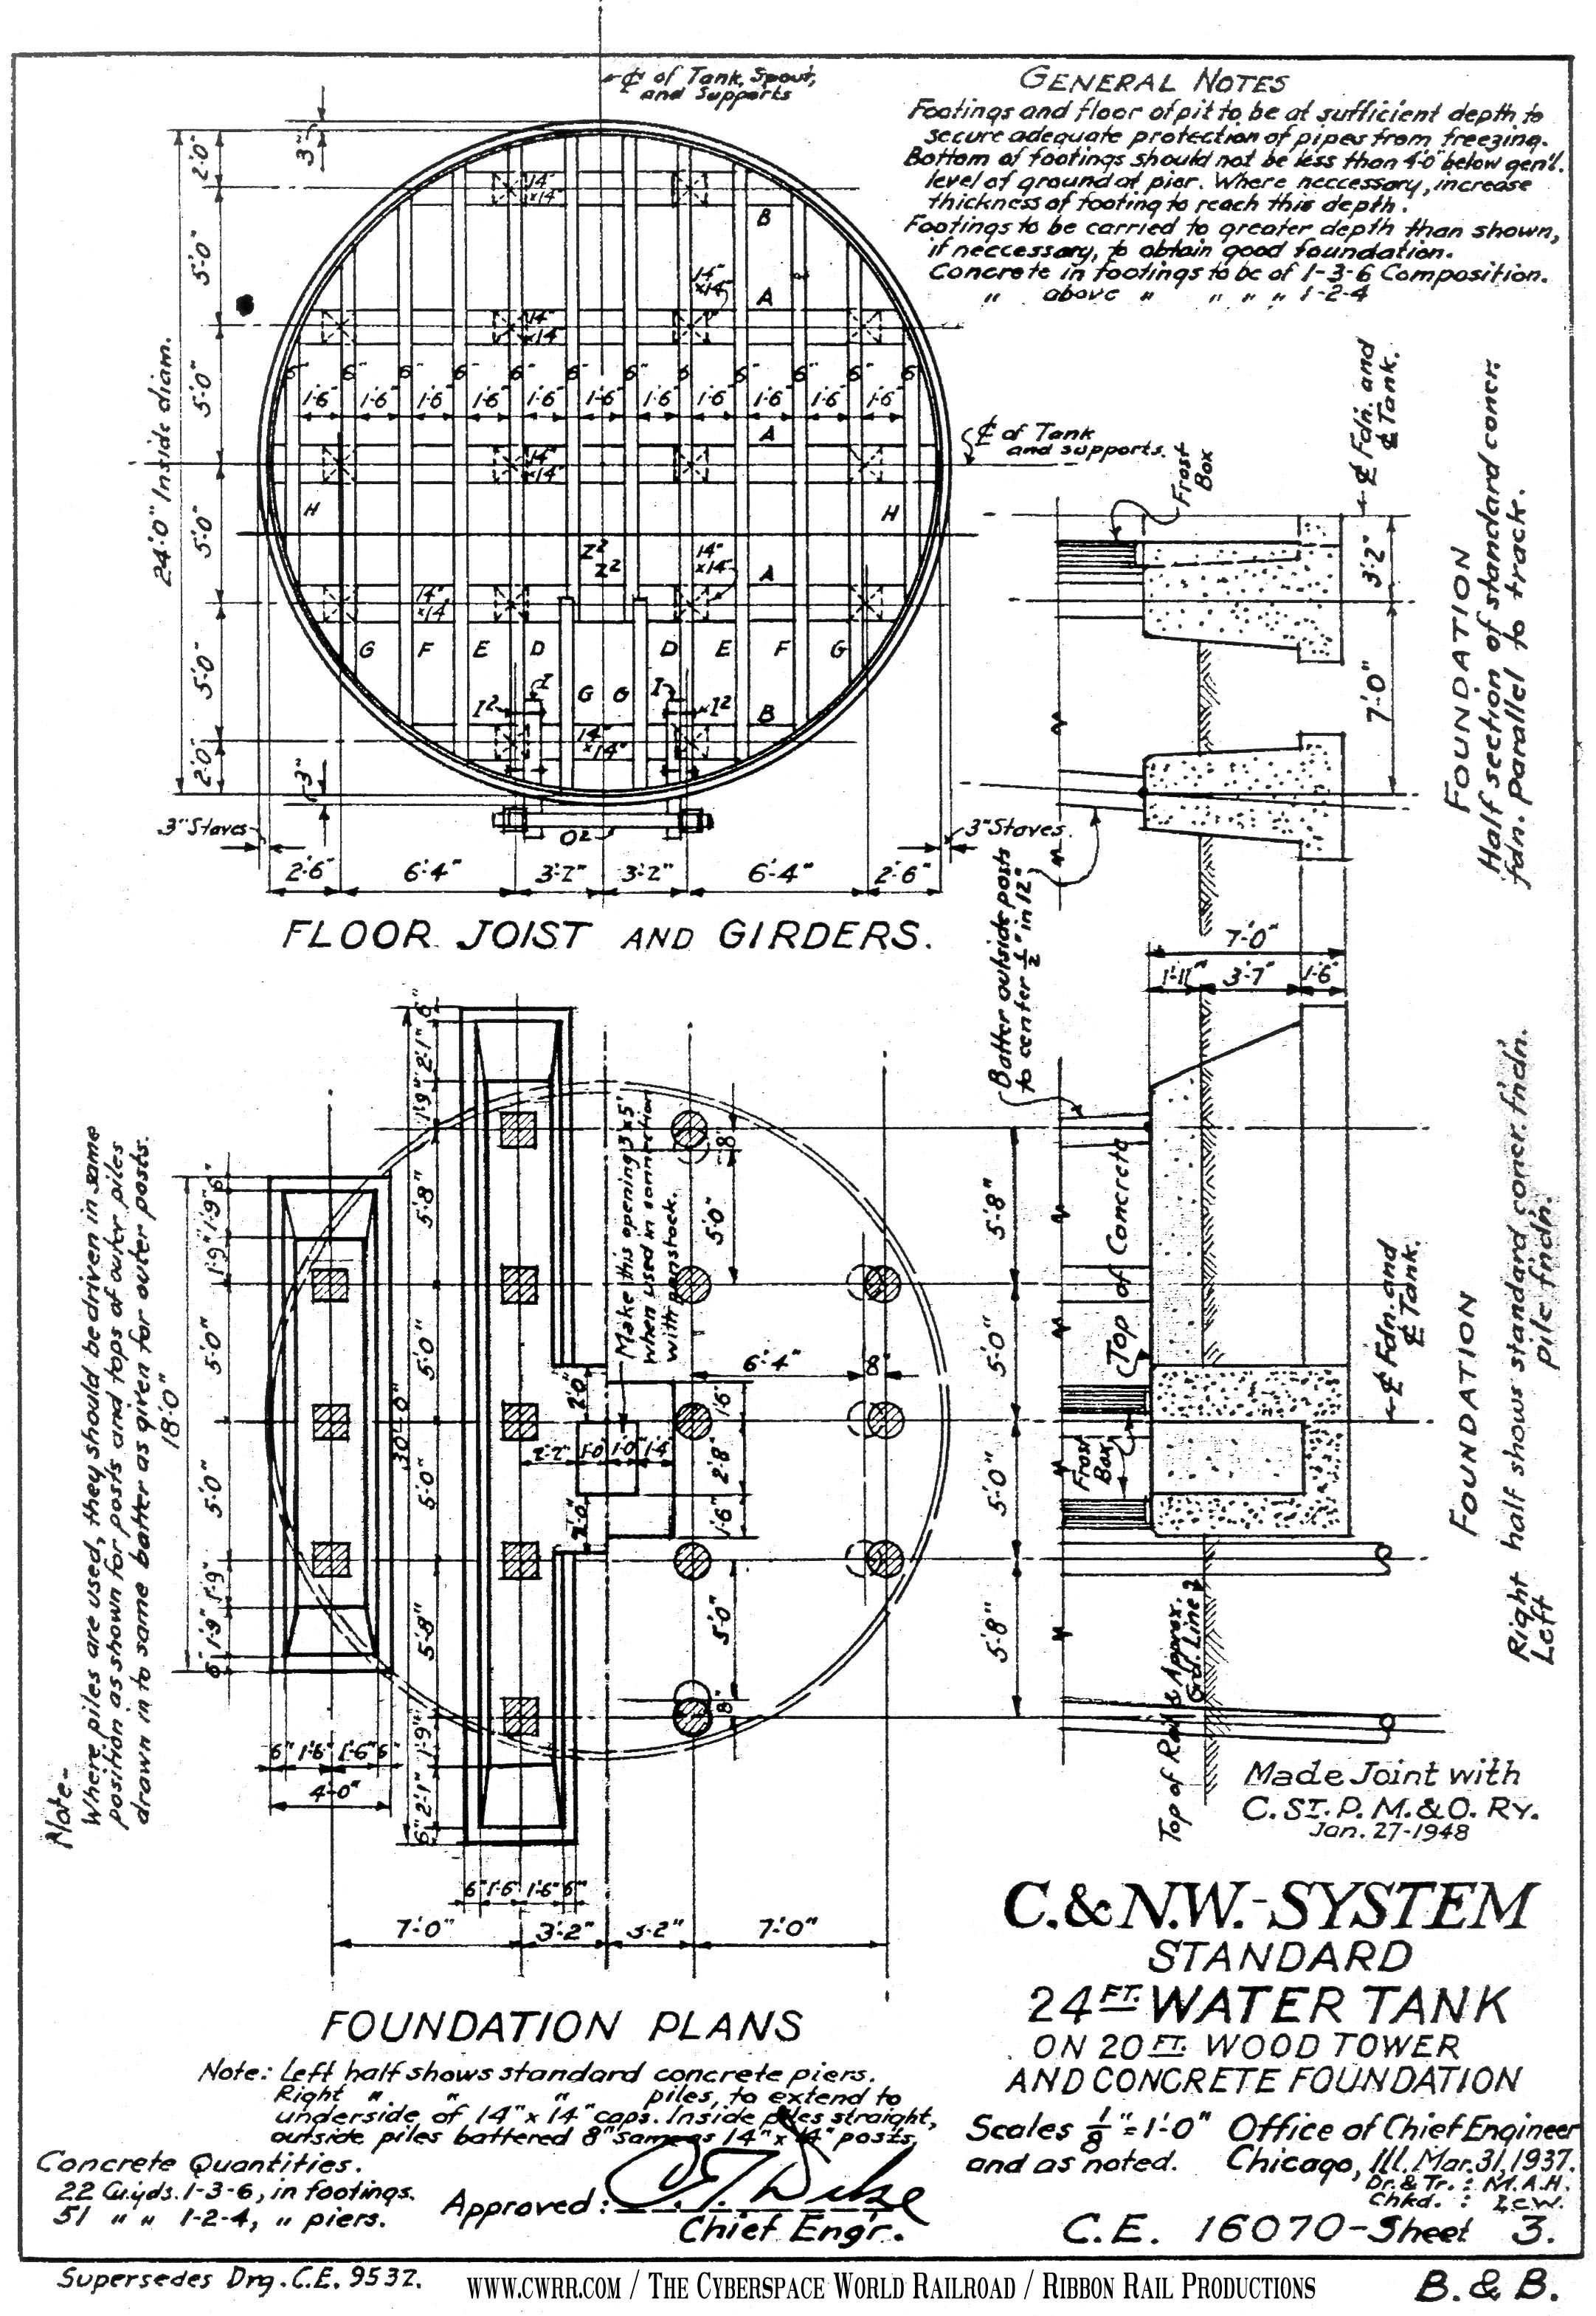 The cyberspace world railroad standard 24ft water tank for Cistern plans